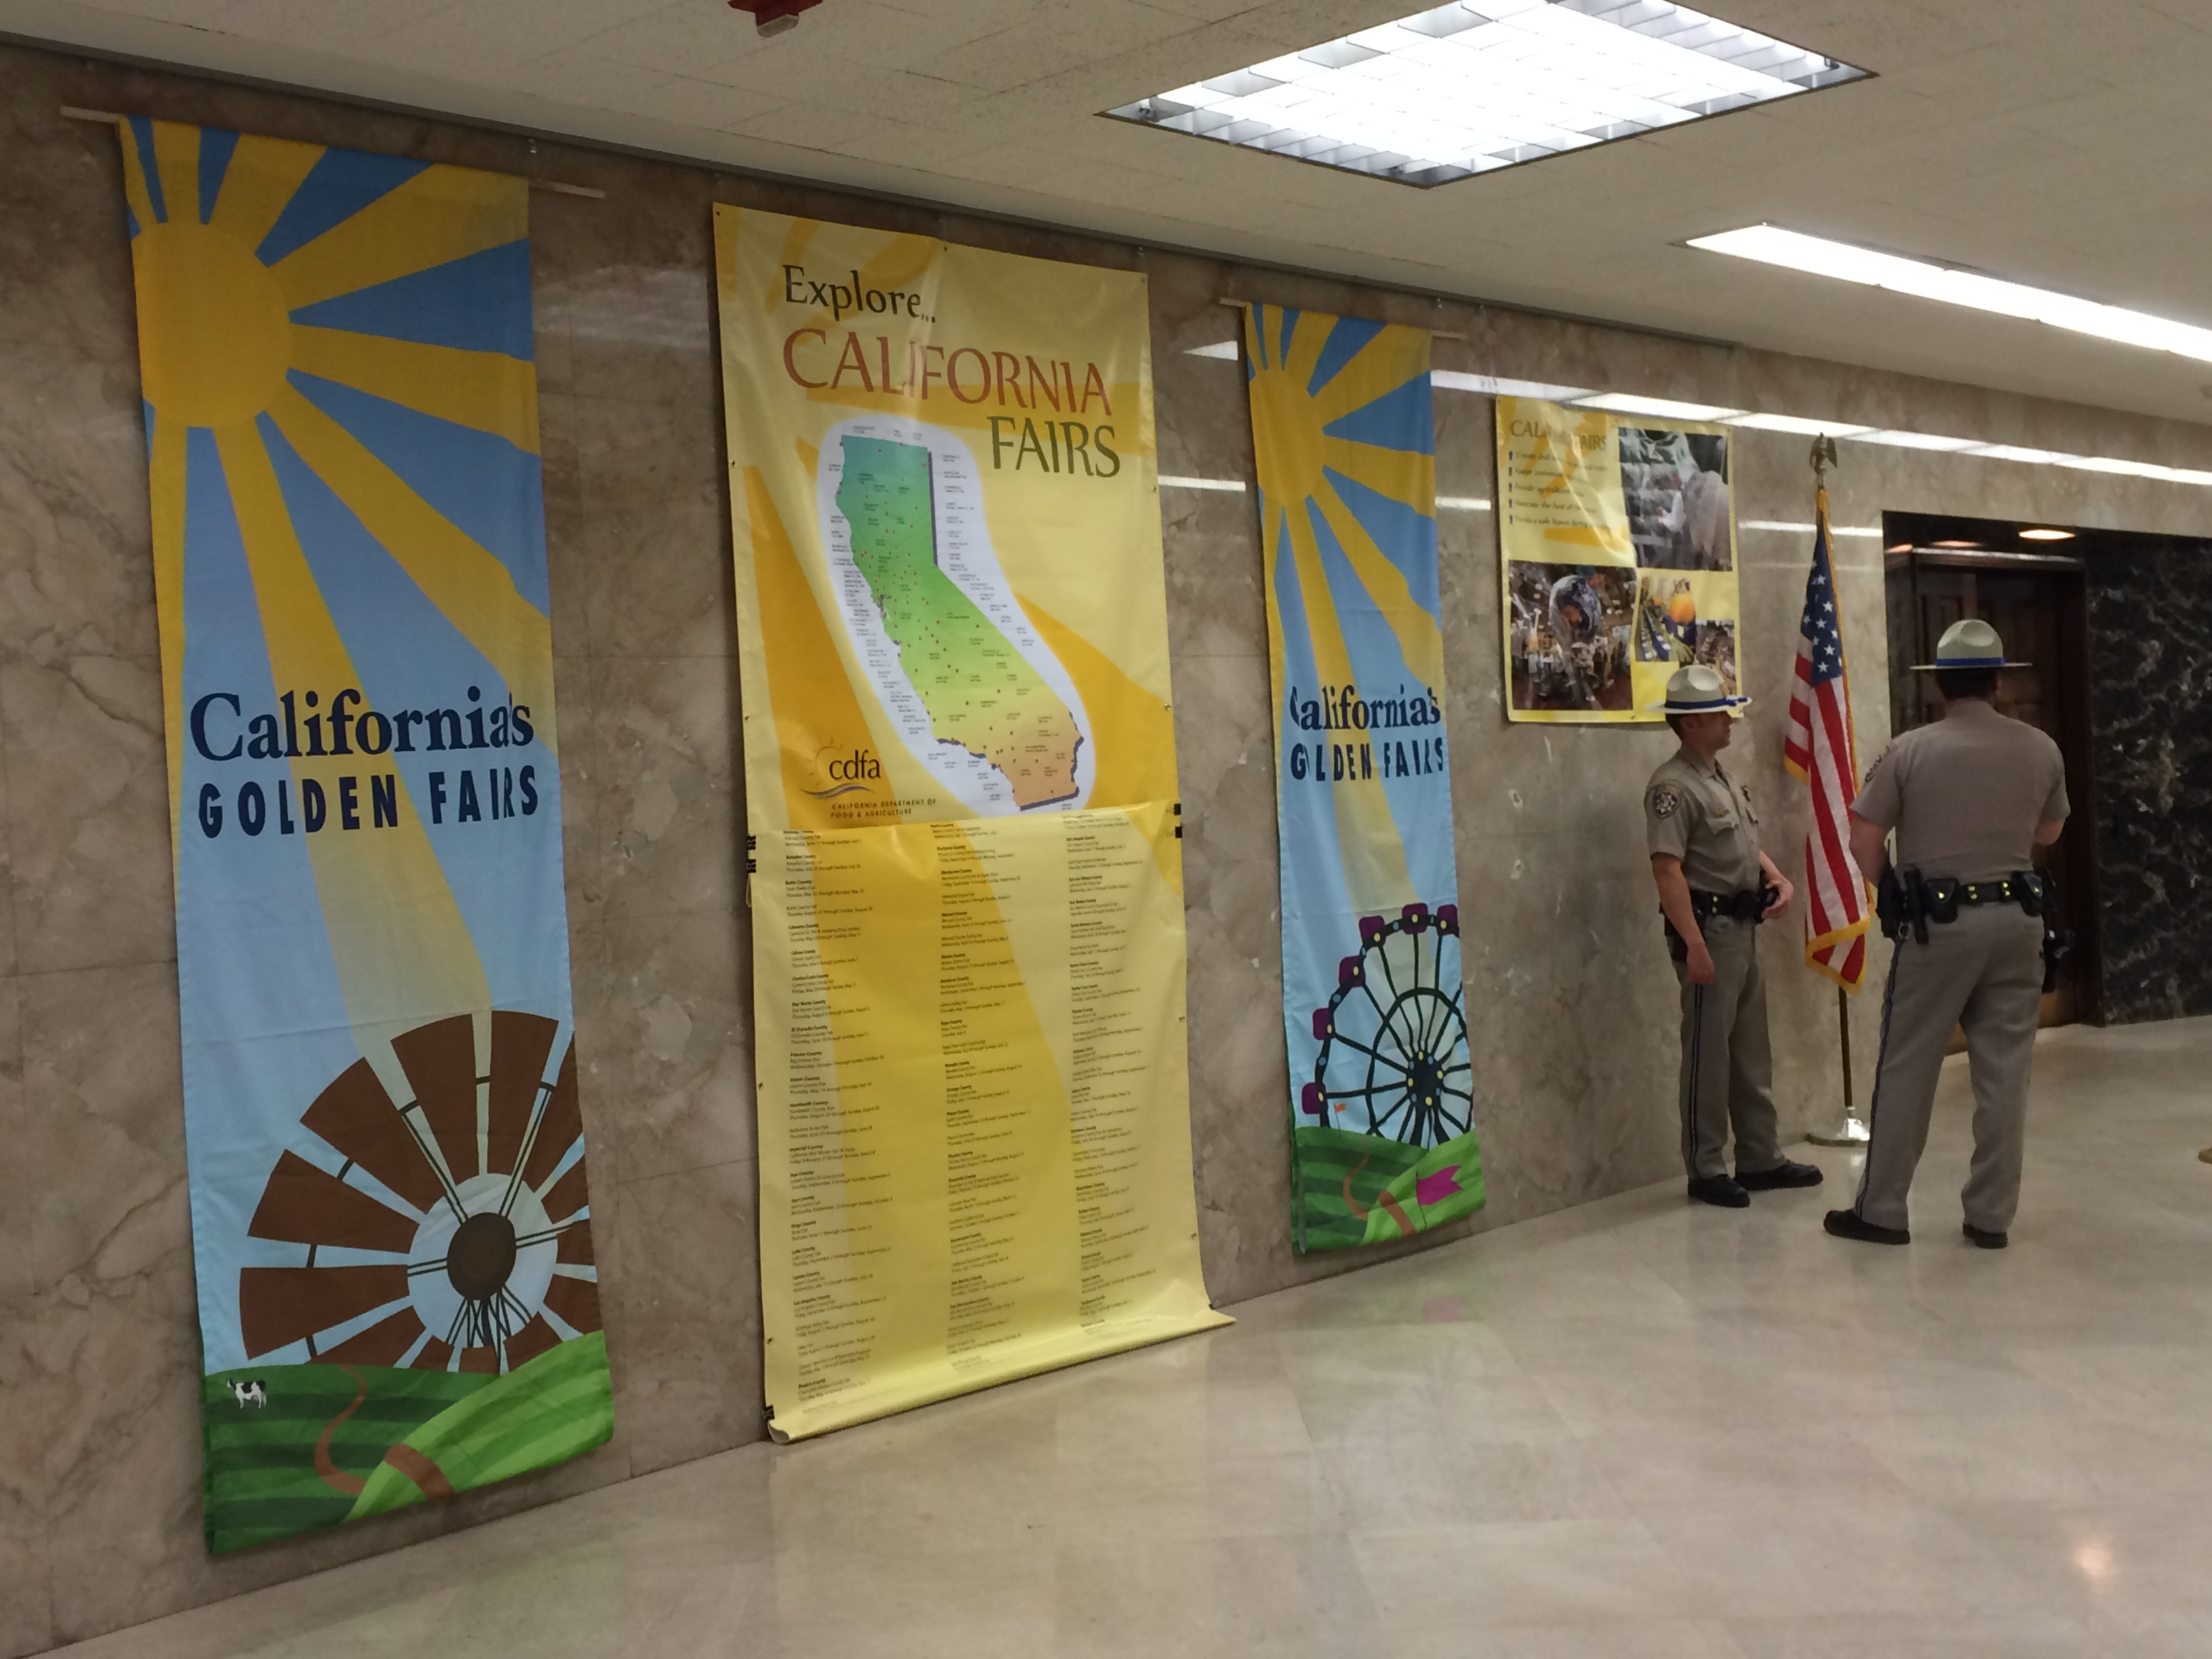 California fairs on display at State Capitol